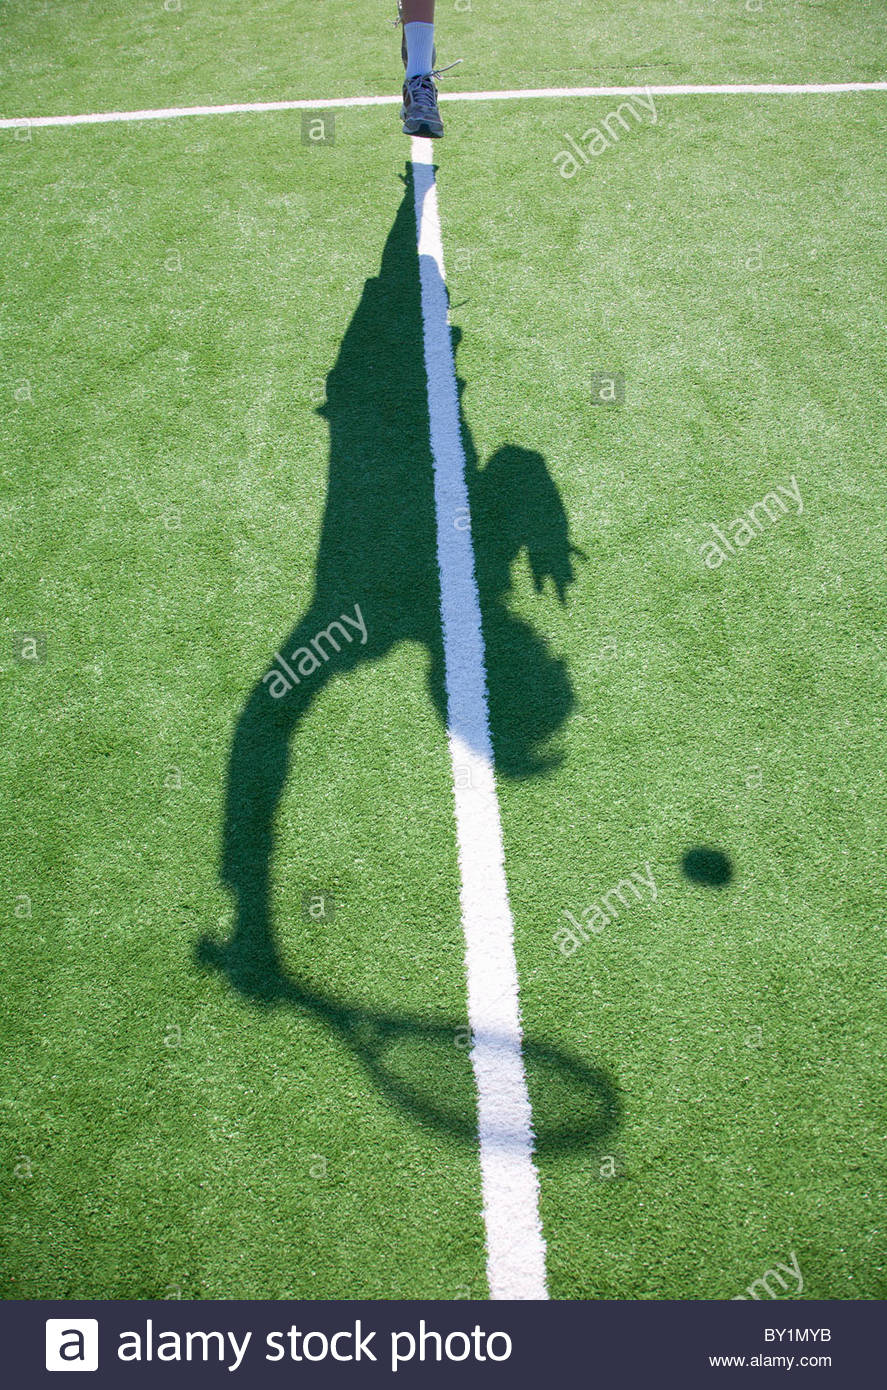 Shadow of figure serving tennis ball - Stock Image